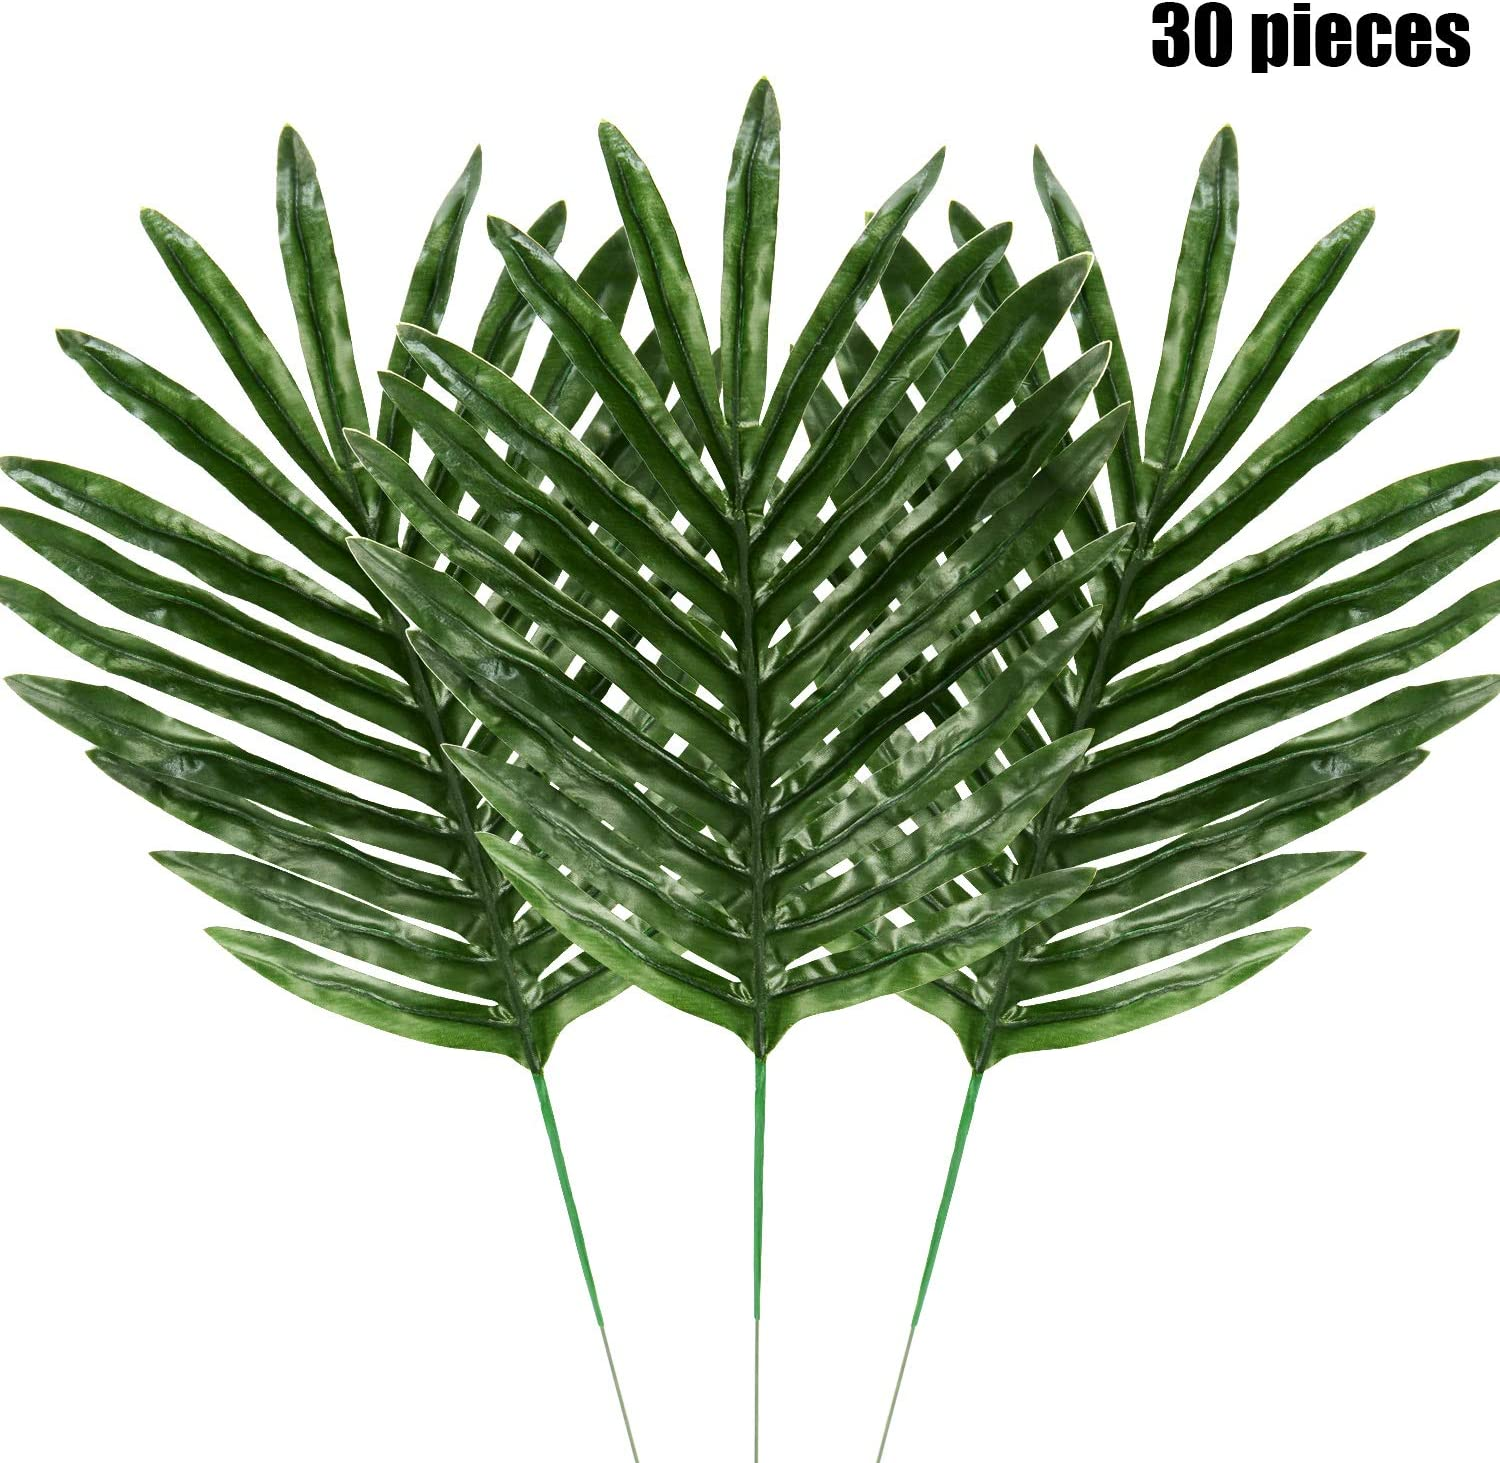 Amazon Com Hicarer Palm Leaves Fake Tropical Leaf Artificial Leaves Decoration Fake Monstera Tropical Leaves 30 Pieces Color Set 1 Home Kitchen